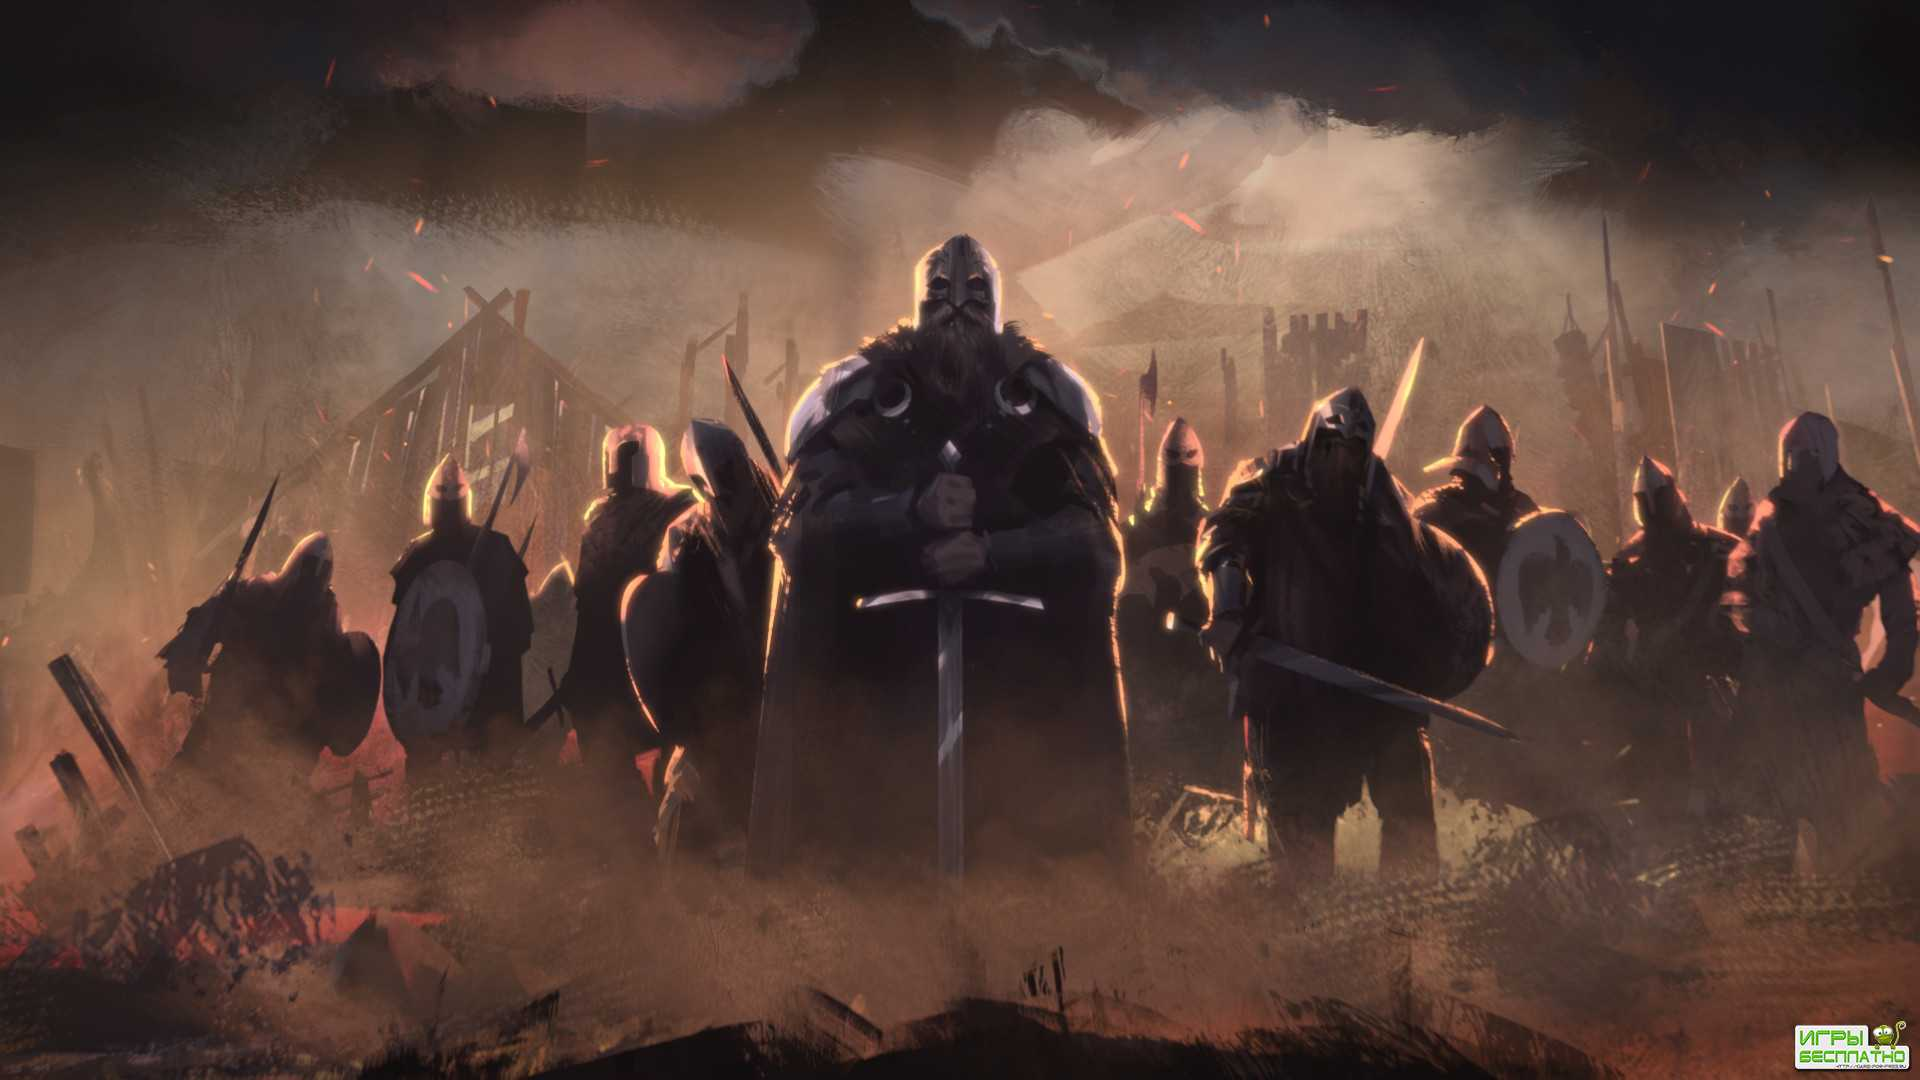 Релизный трейлер Total War Saga: Thrones of Britannia